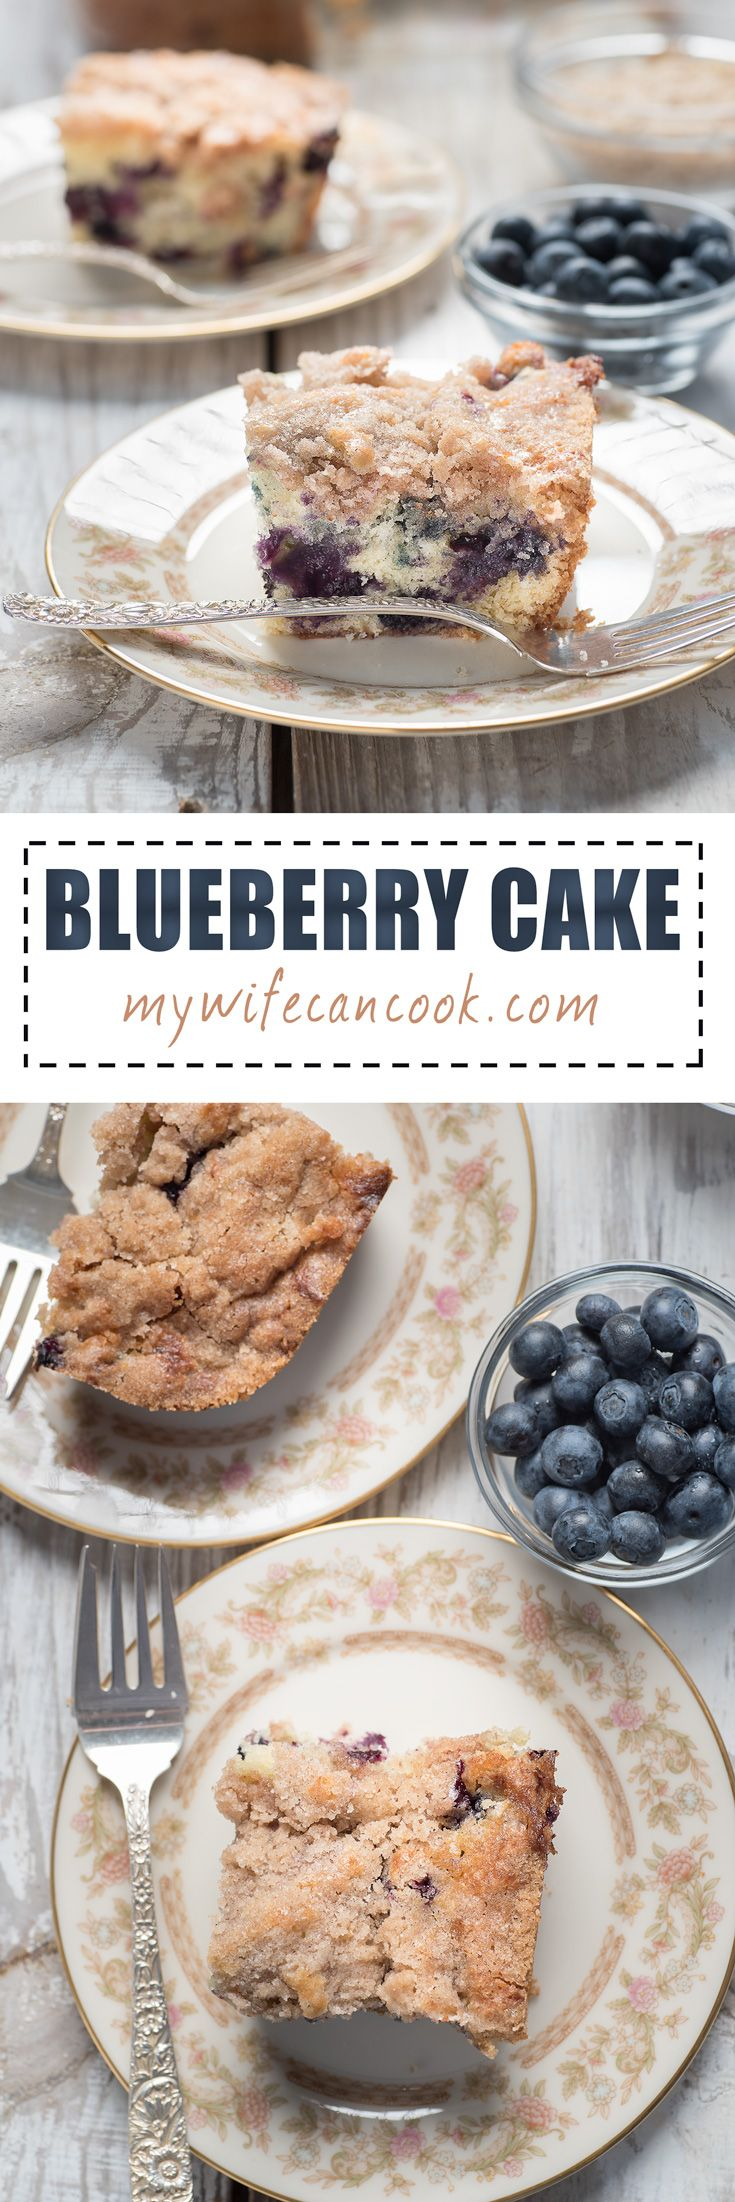 Whether classified as a dessert or as coffee cake -- which, let's be honest,  is really dessert for breakfast -- this blueberry cake recipe is sure to please. It's at it's best made with fresh in season blueberries, but we'll understand if you feel the need to make it throughout the year. You might also call this a  blueberry crumble cake because of the crumble topping which is way easier to create than many think. So fix it and have a piece for dessert. Or breakfast?